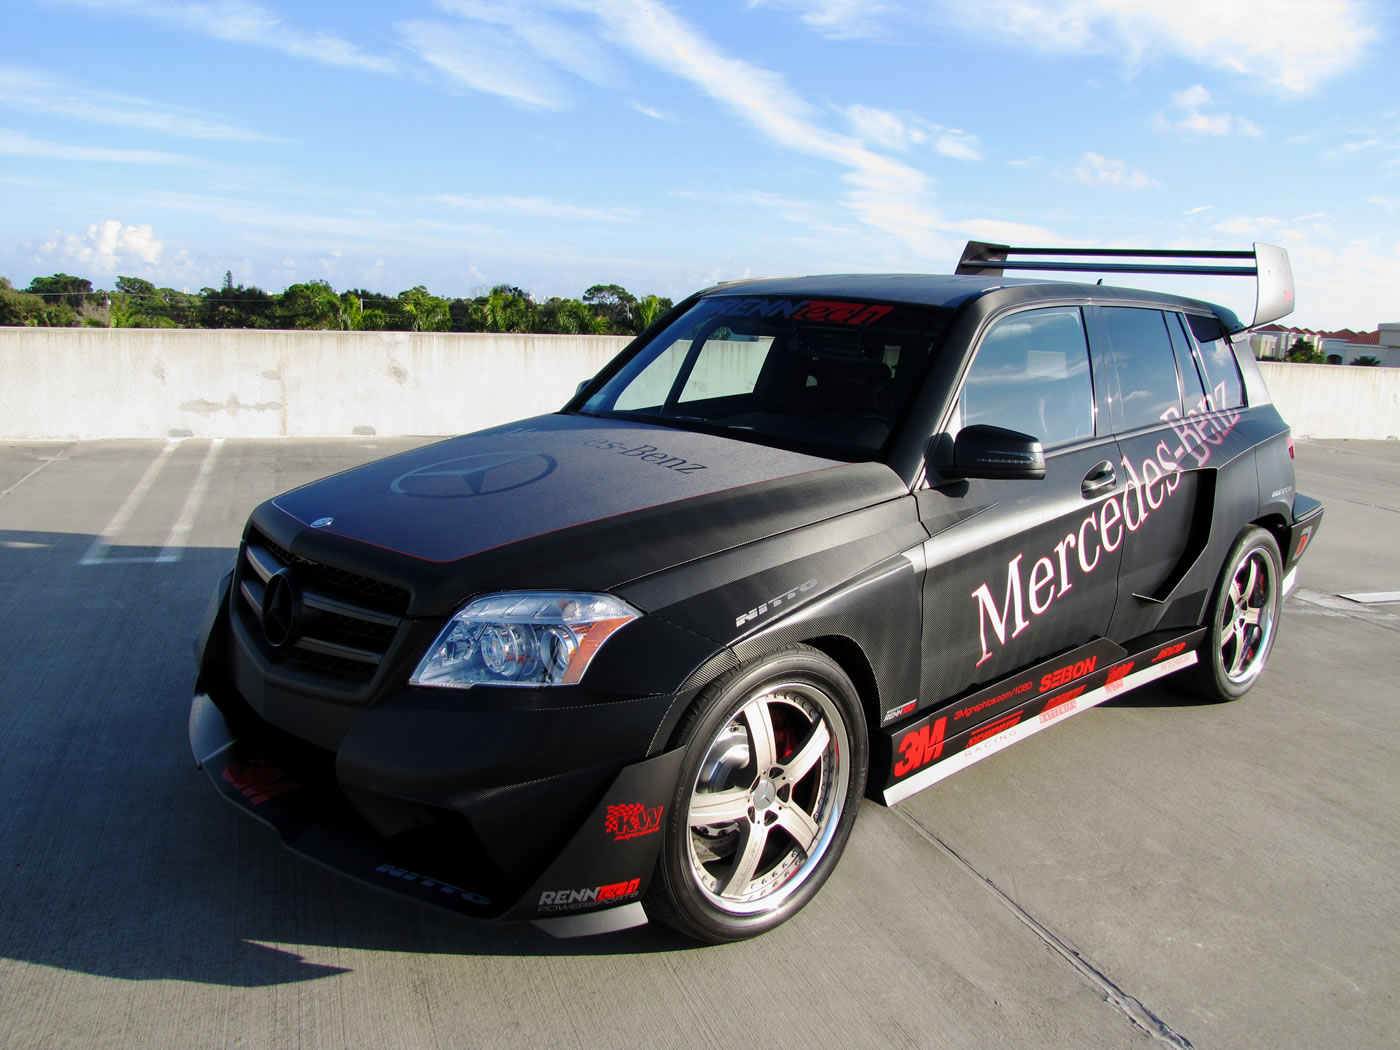 GLK350 Hybrid Pikes Peak Rally Car Revamped | Mercedes-Benz